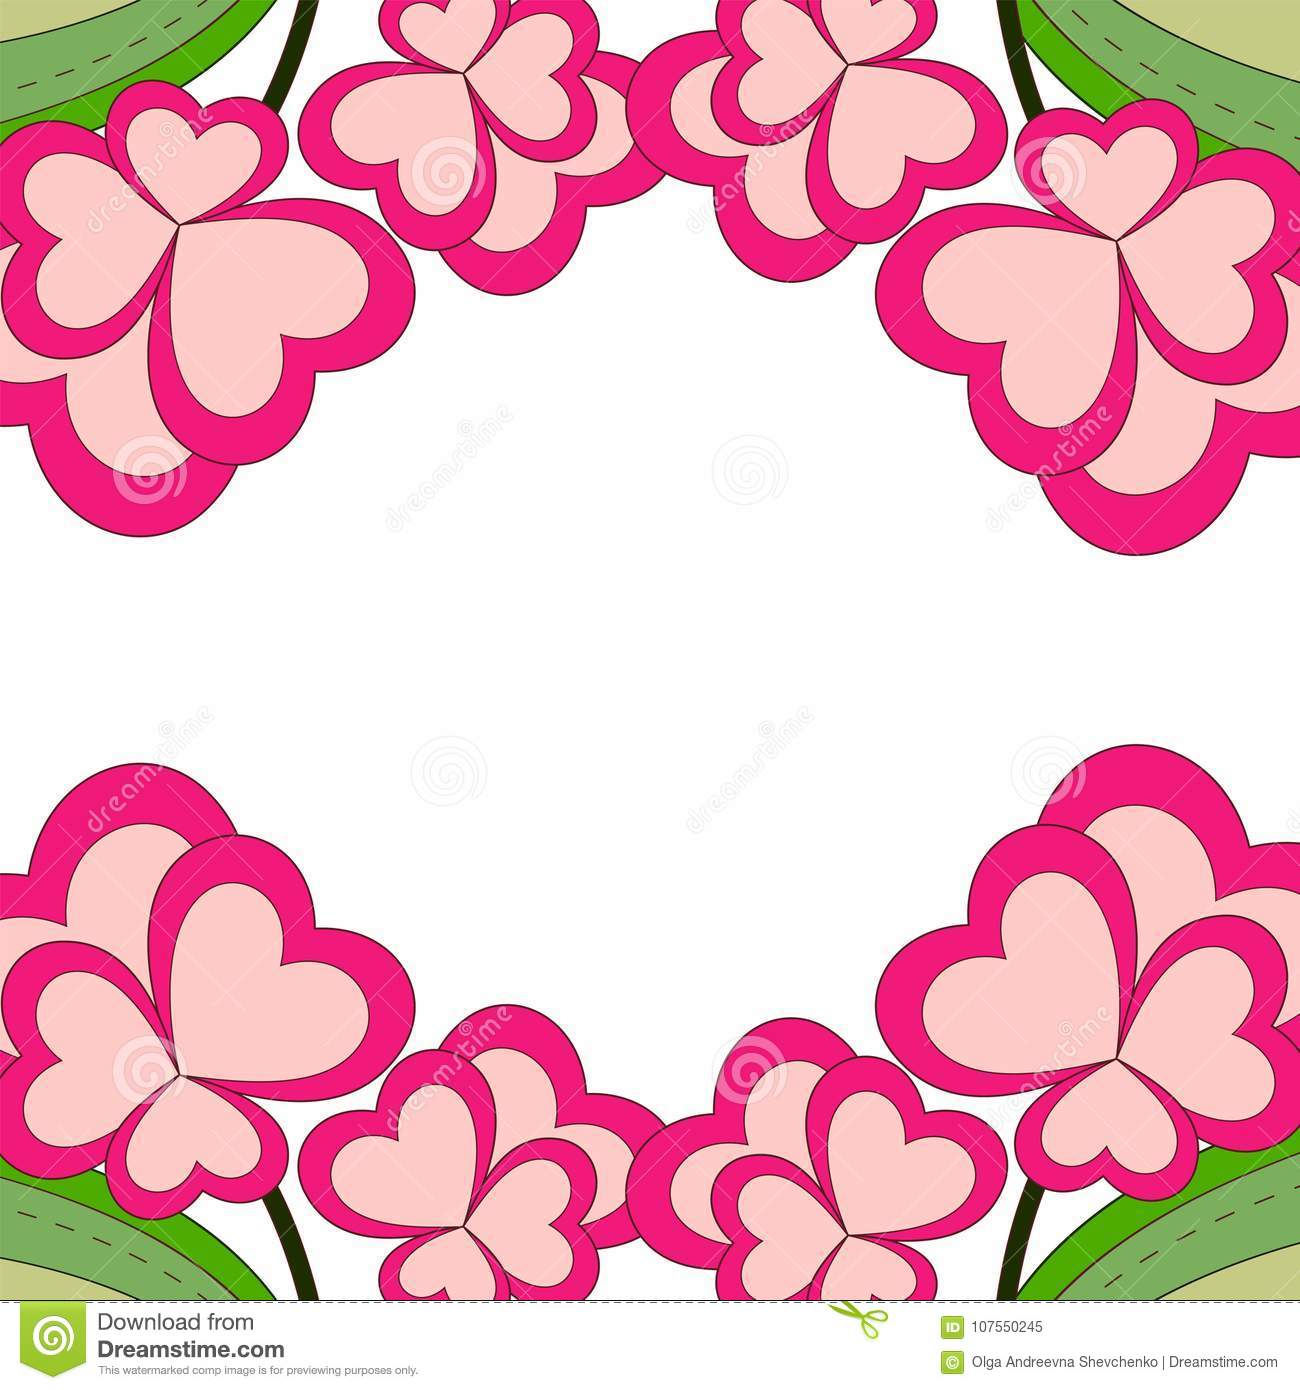 colorful heart flower plant border frame close up view